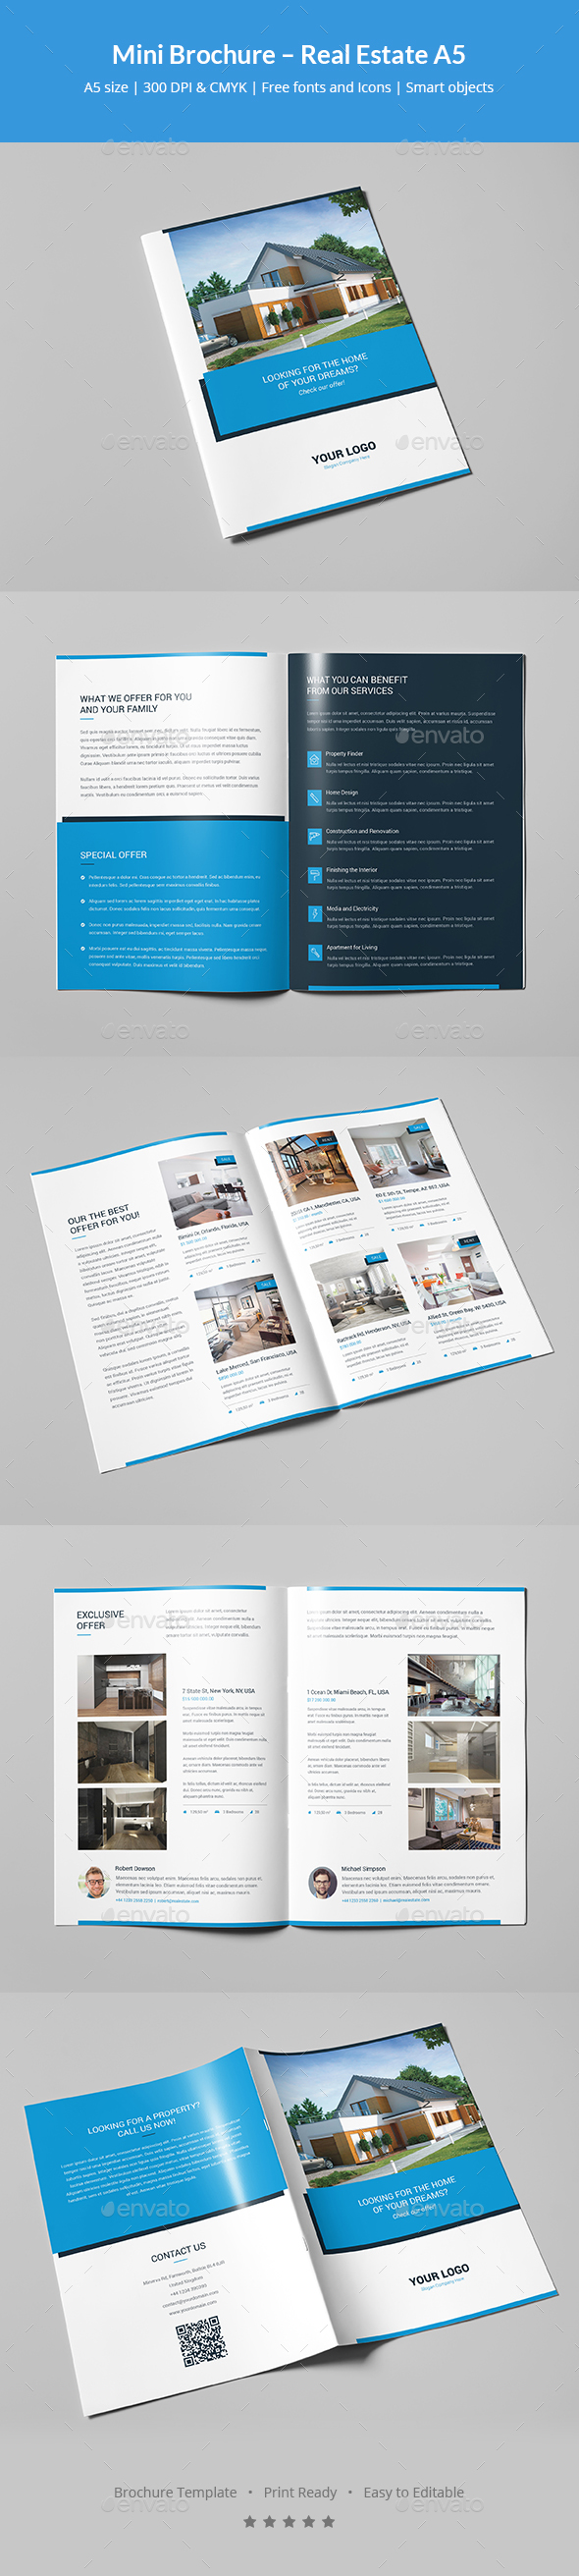 Mini Brochure Real Estate A By Artbart GraphicRiver - Mini brochure template